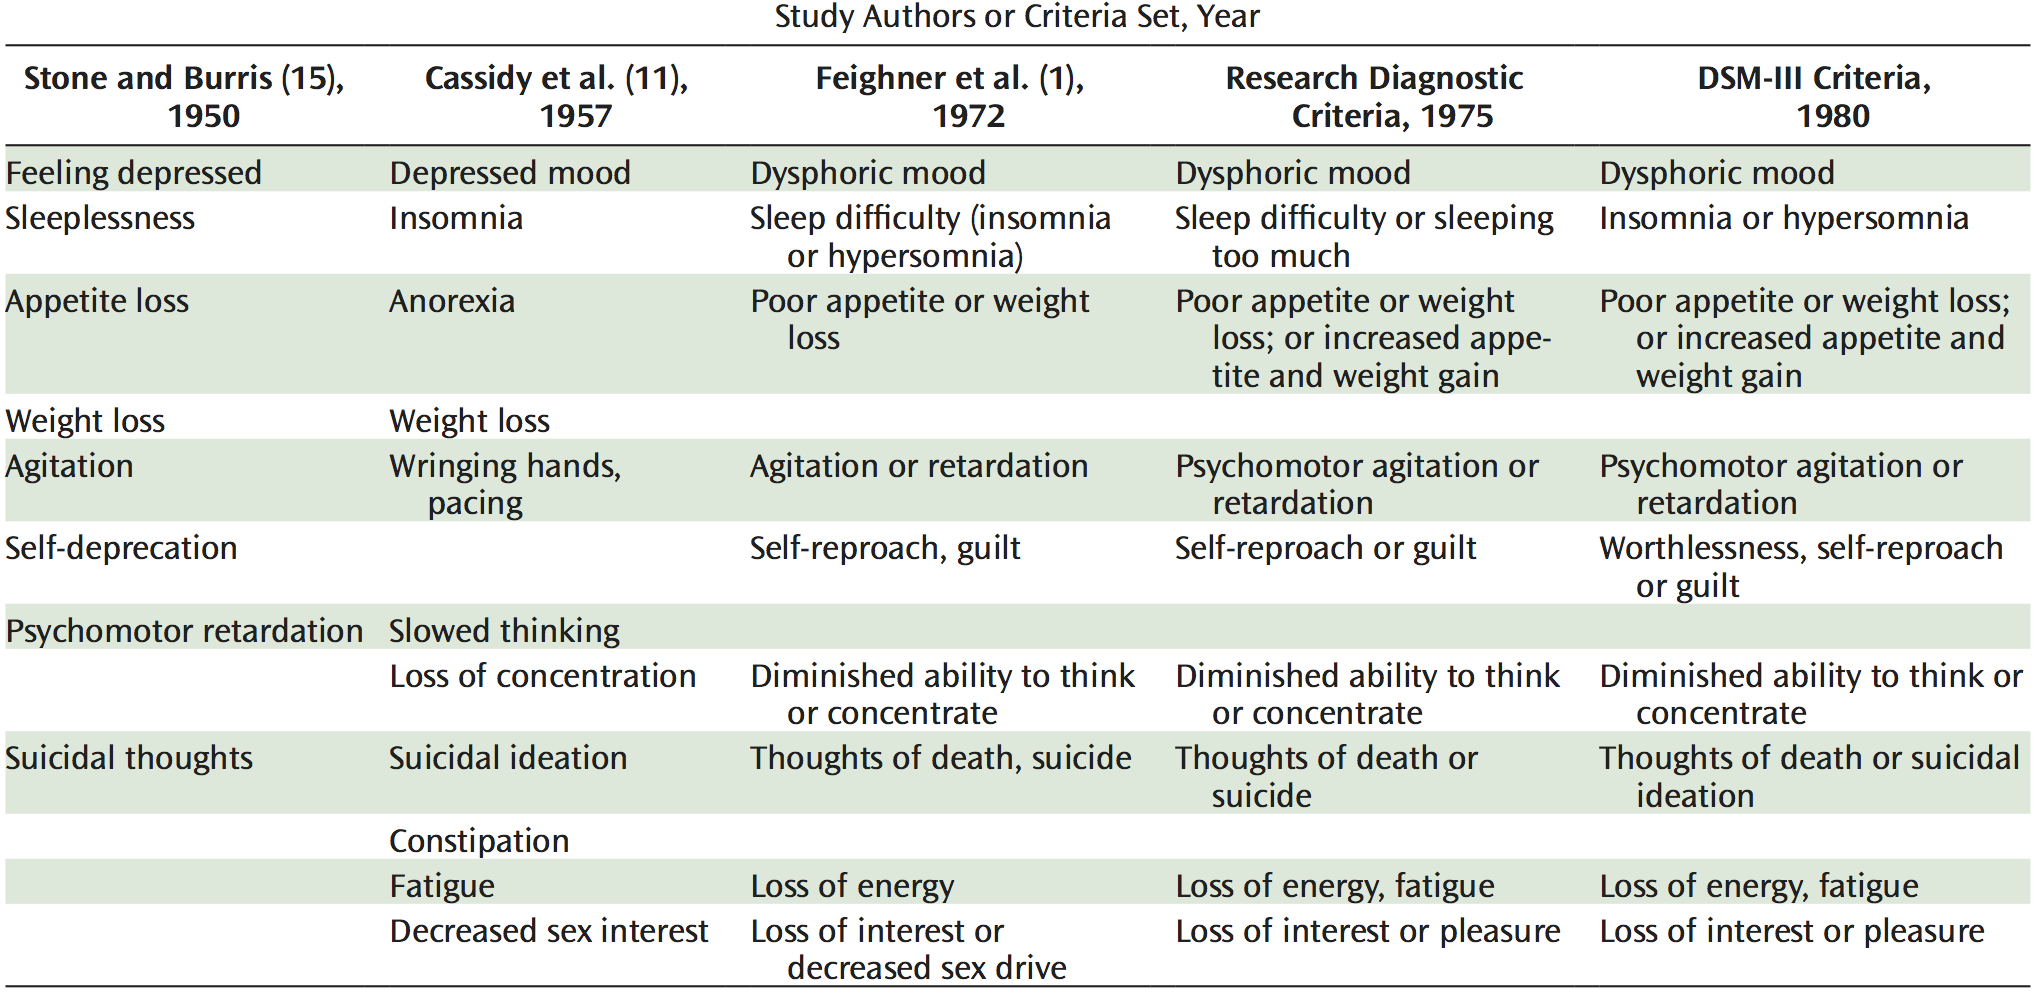 Historical origins of the symptomatic criteria for Major Depression: Criteria proposed 1950-1980. Table and caption from [Kendler et al. 2010](https://doi.org/10.1176/appi.ajp.2009.09081155).